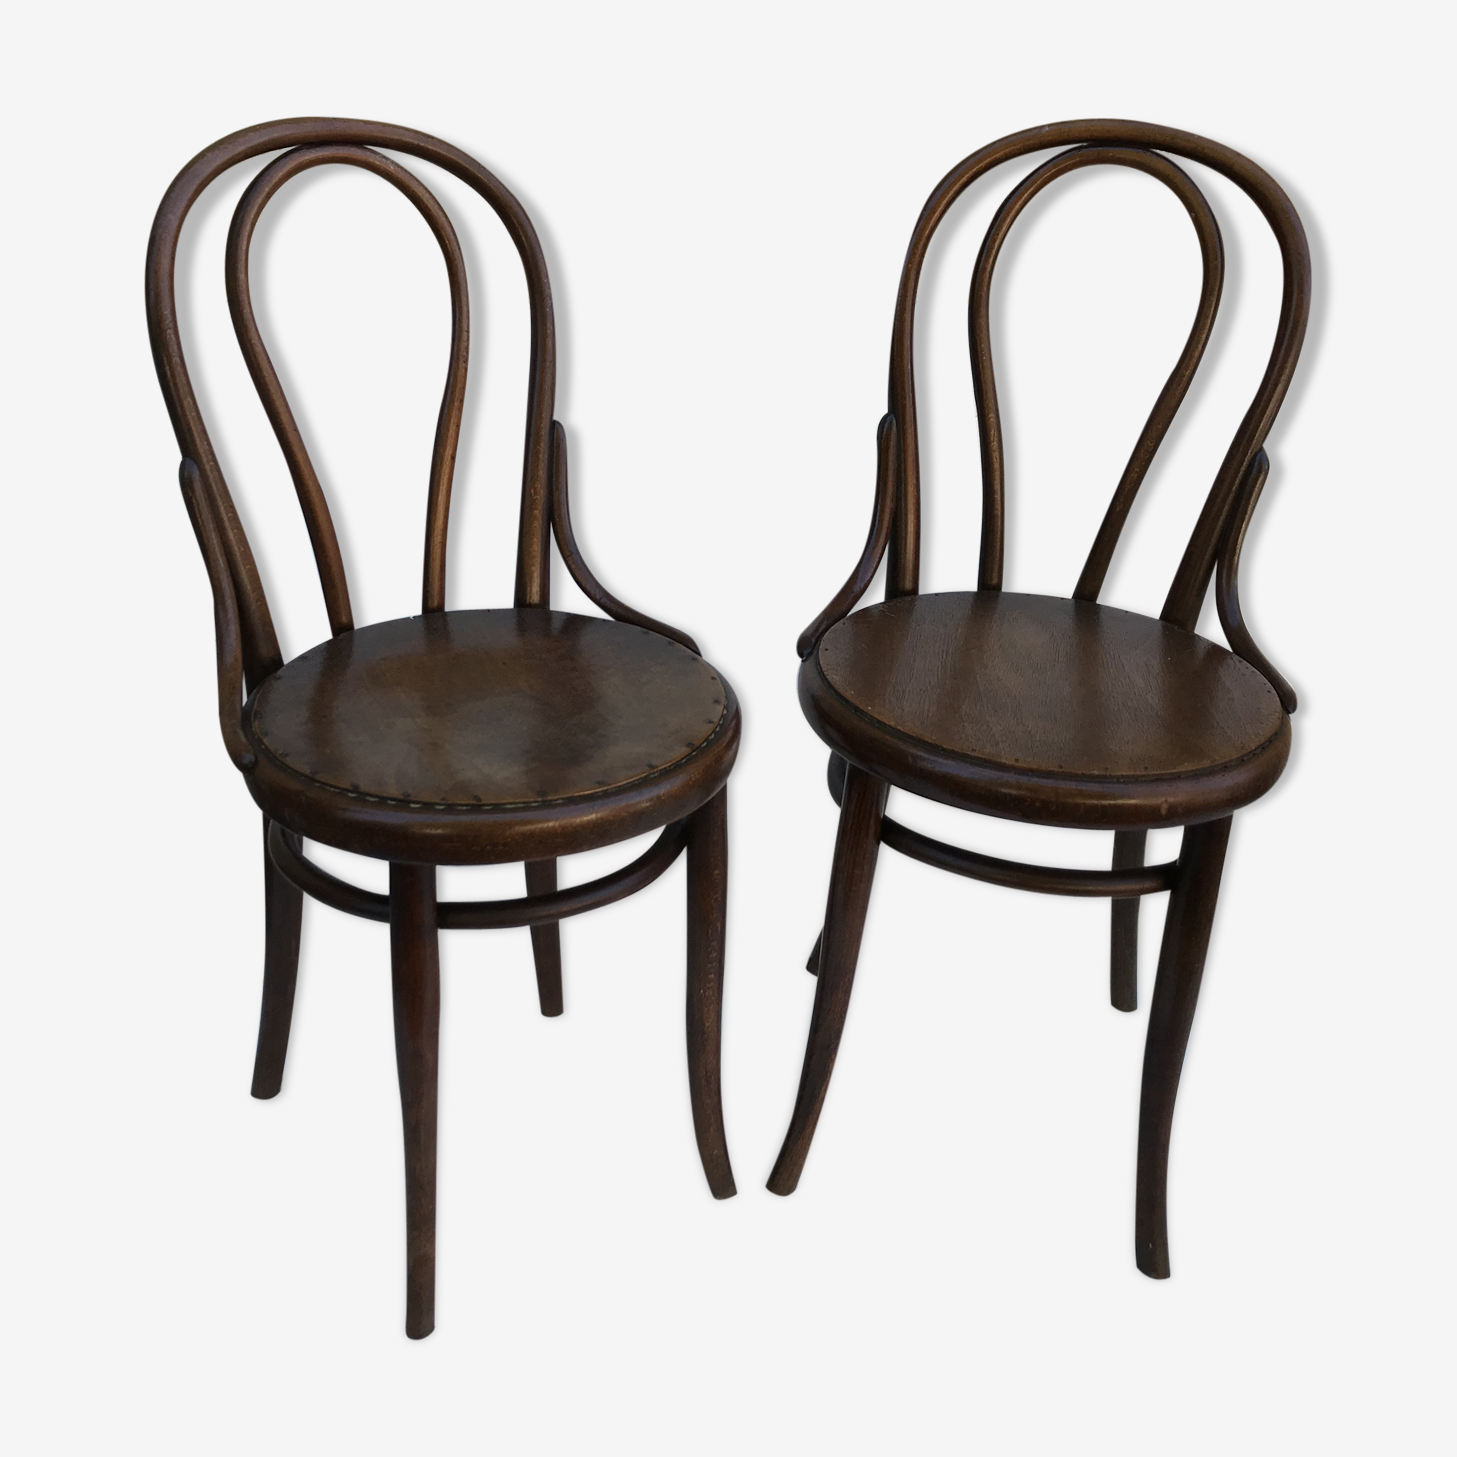 Pair of old Thonet chairs